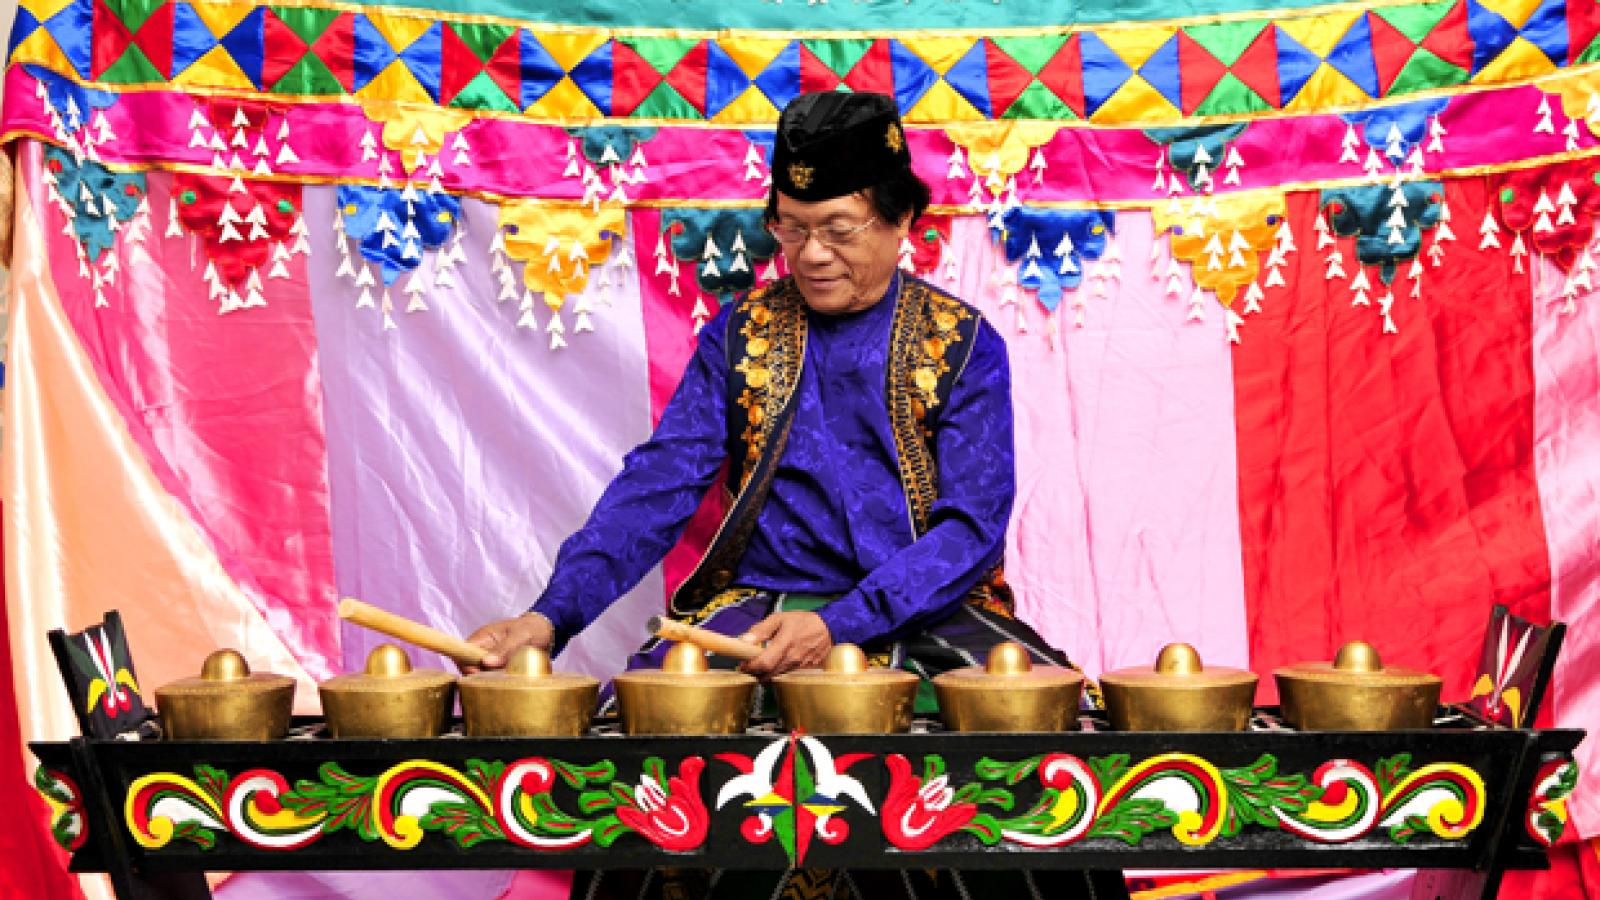 A man in a purple shirt and gold and black vest sits behind a musical instrument made up of eight small gongs.